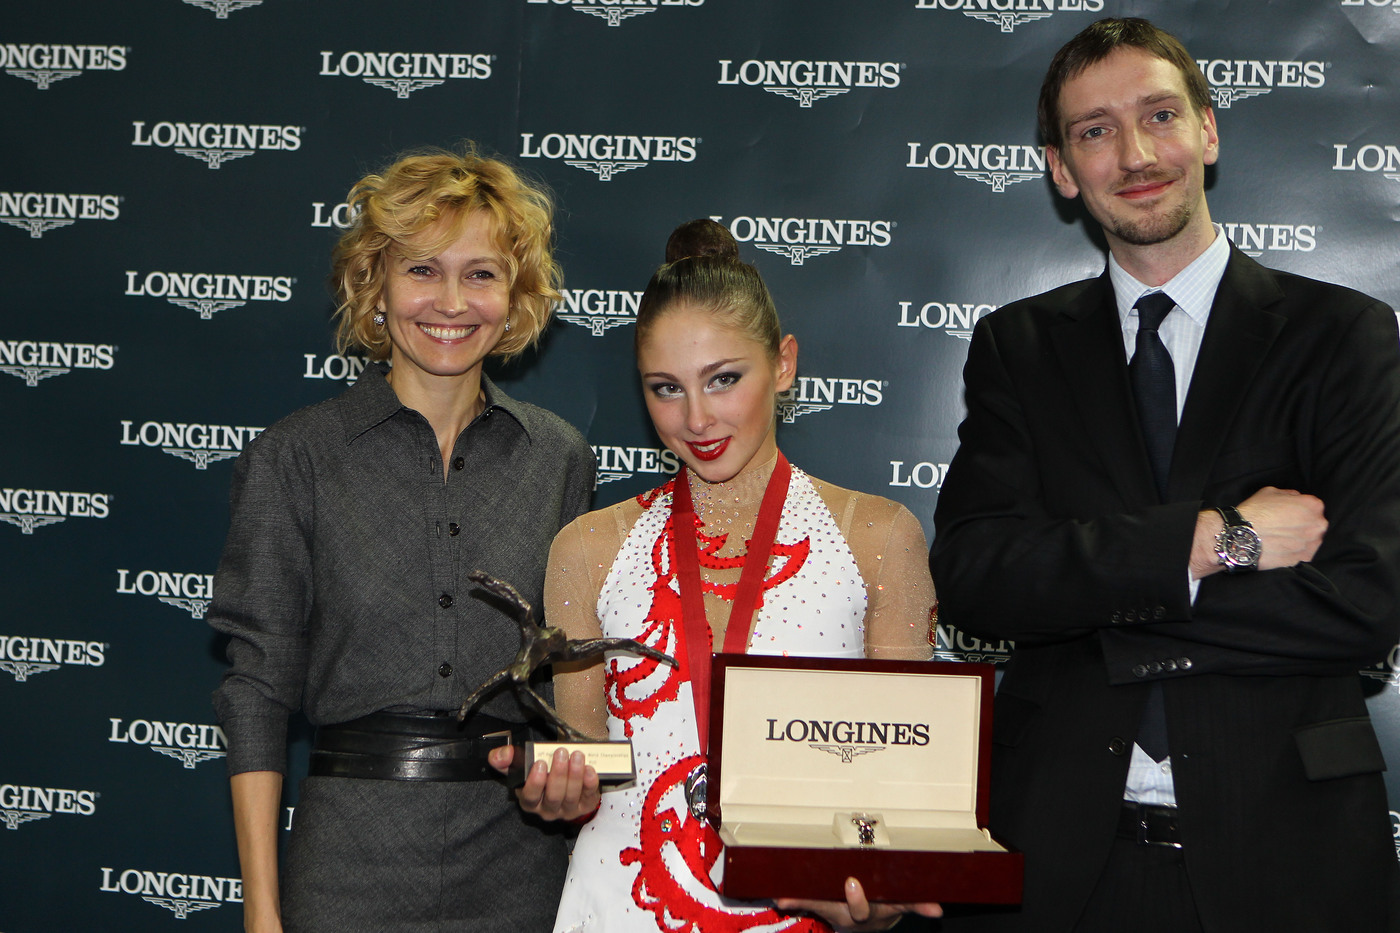 Longines Gymnastics Event: Ingeborga Dapkunaite gives the Longines Prize for Elegance to Daria Kondakova 6